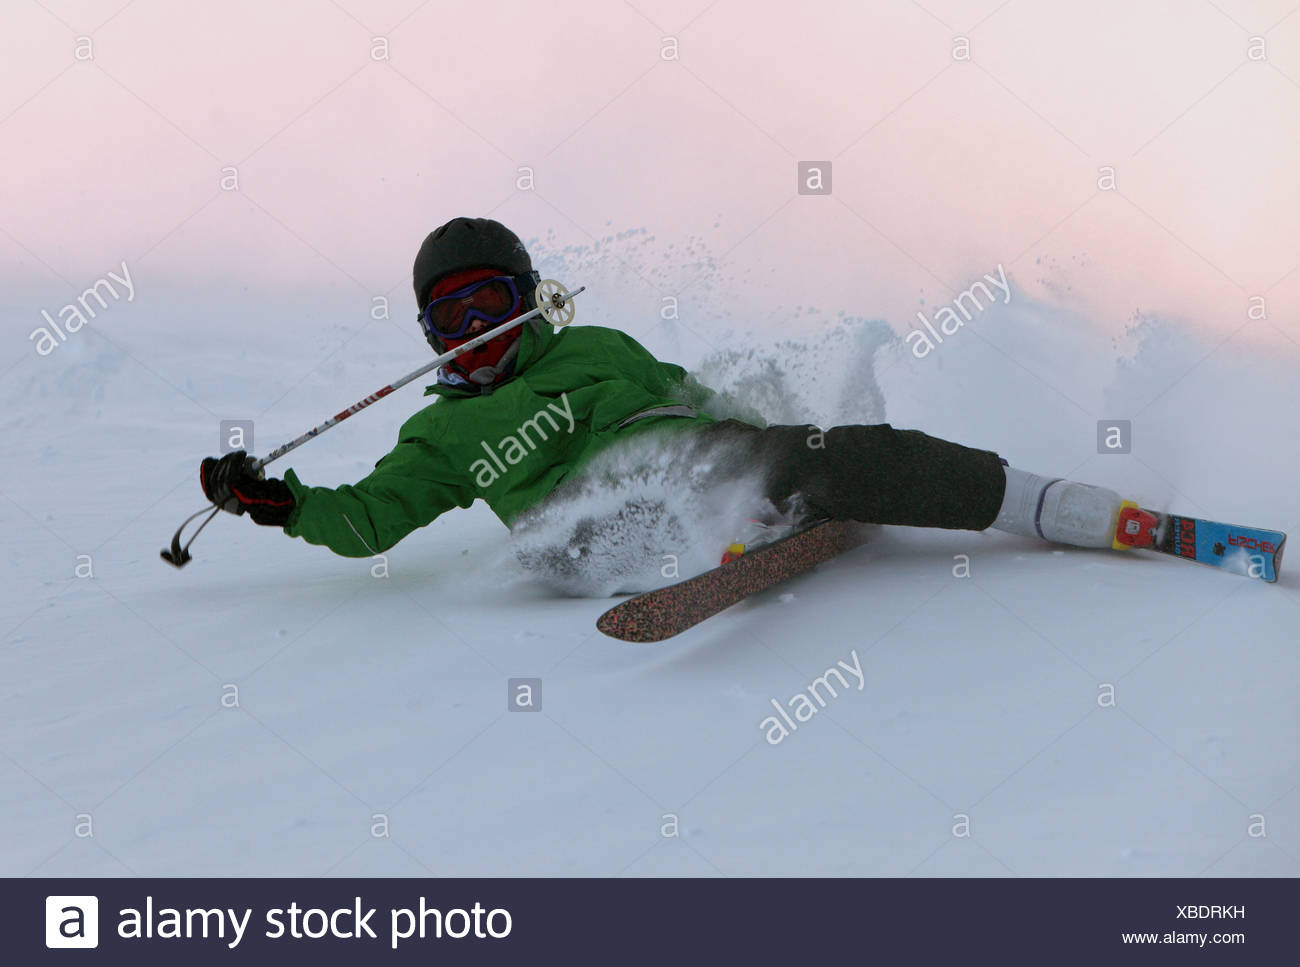 Krippenbrunn, Austria, is a boy crashed while skiing - Stock Image